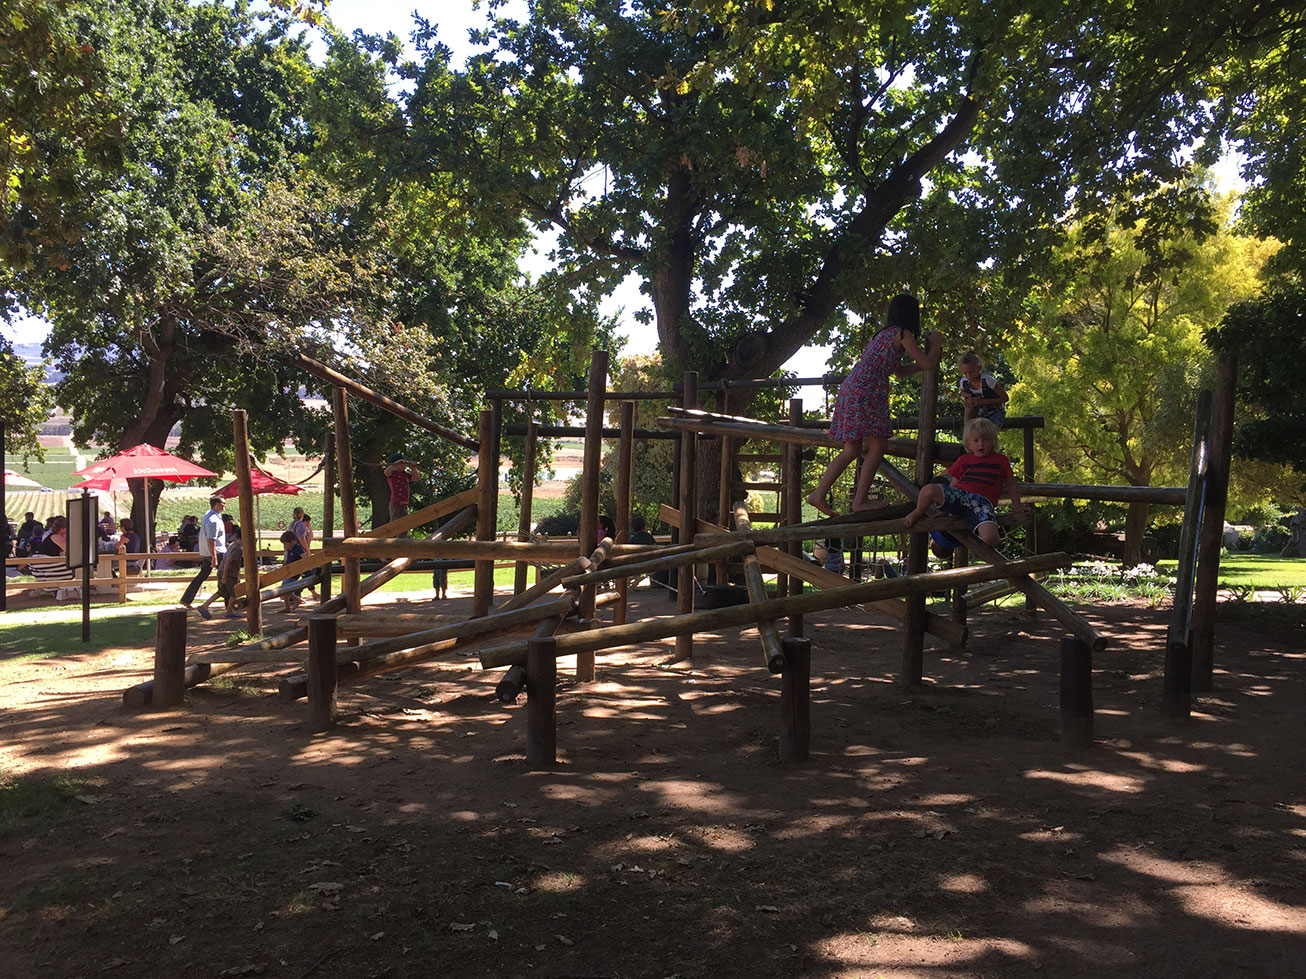 The Spice Route Paarl playground